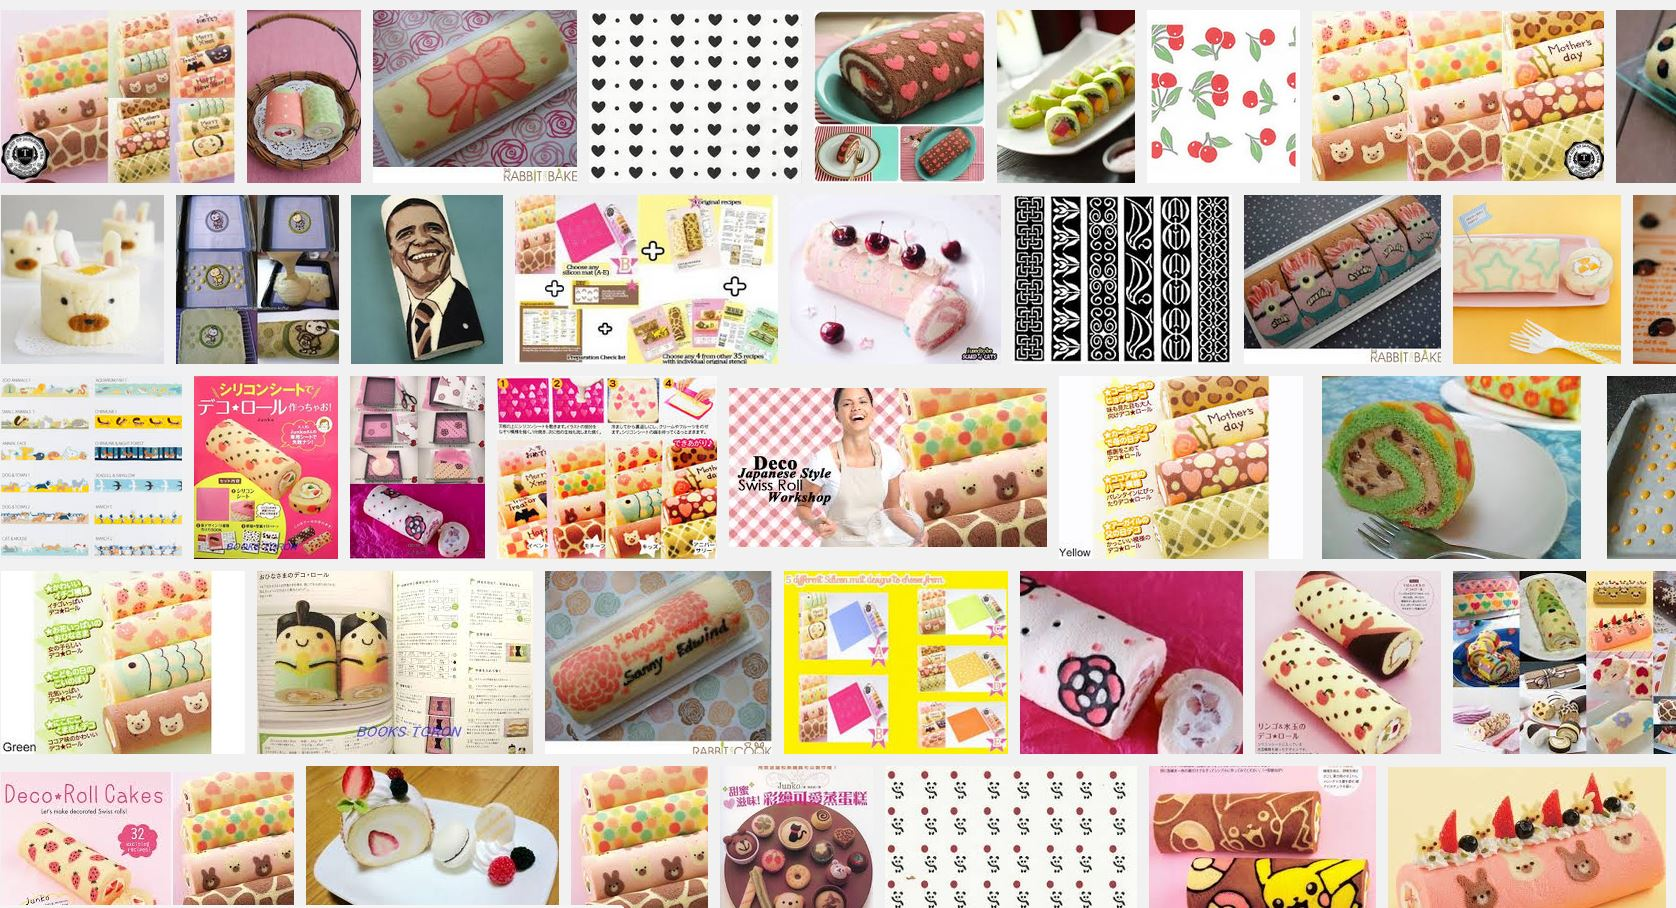 Google Images Search For Deco Roll